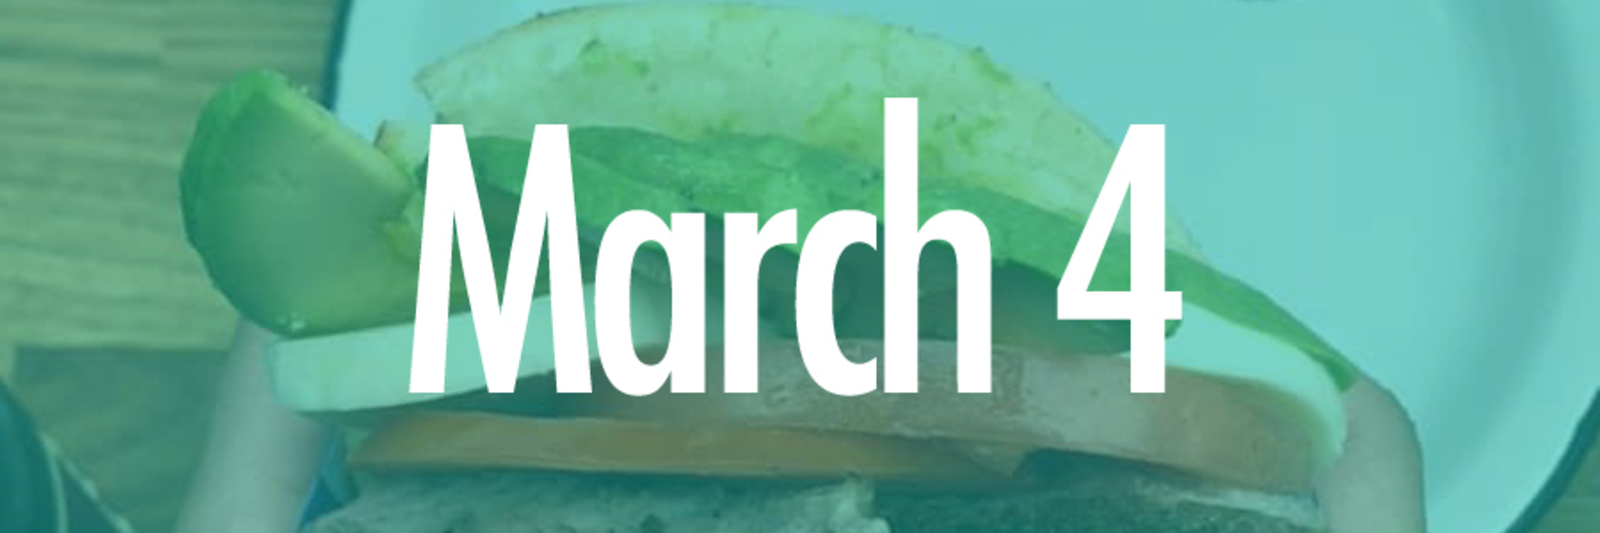 Normal2x march 4 events sara kalke template   teal